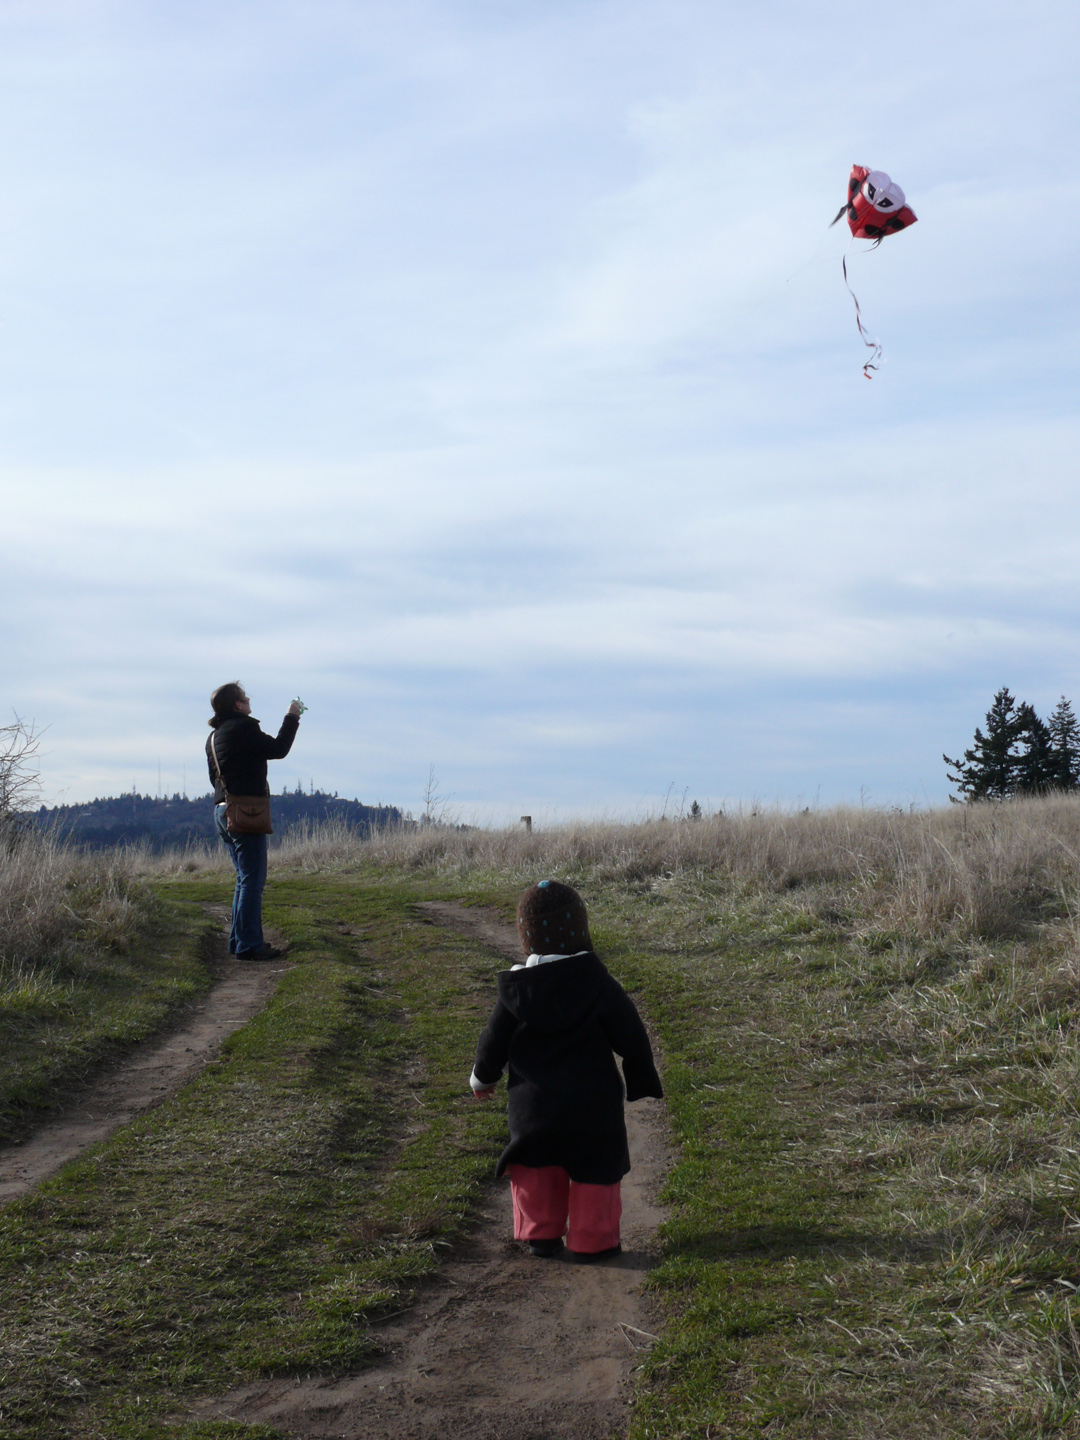 The top of the butte is large, flat and without much trees, hence perfect conditions for flying kites.